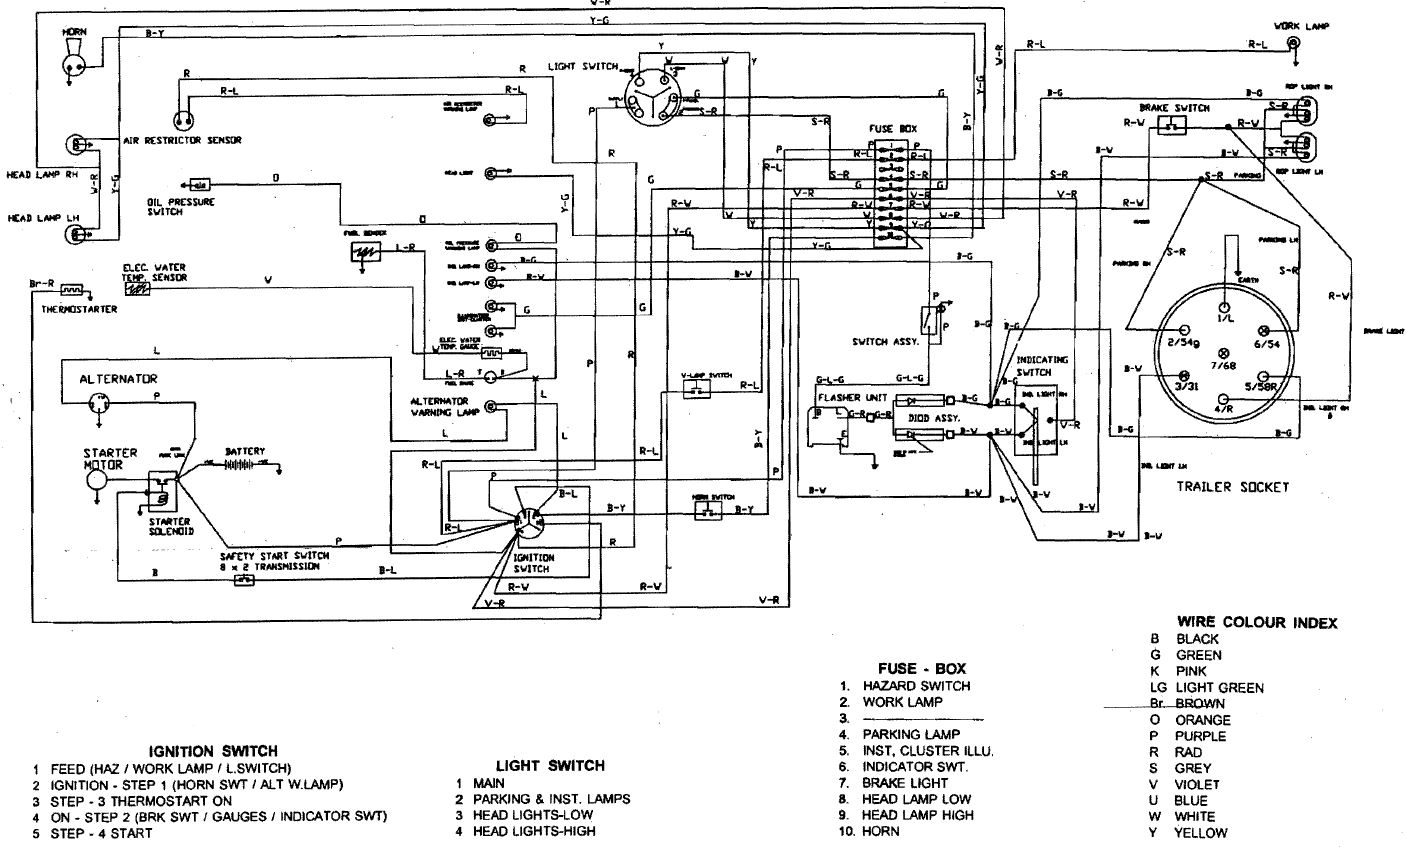 20158463319_b82d524c3d_o ignition switch wiring diagram ignition wiring diagram at readyjetset.co